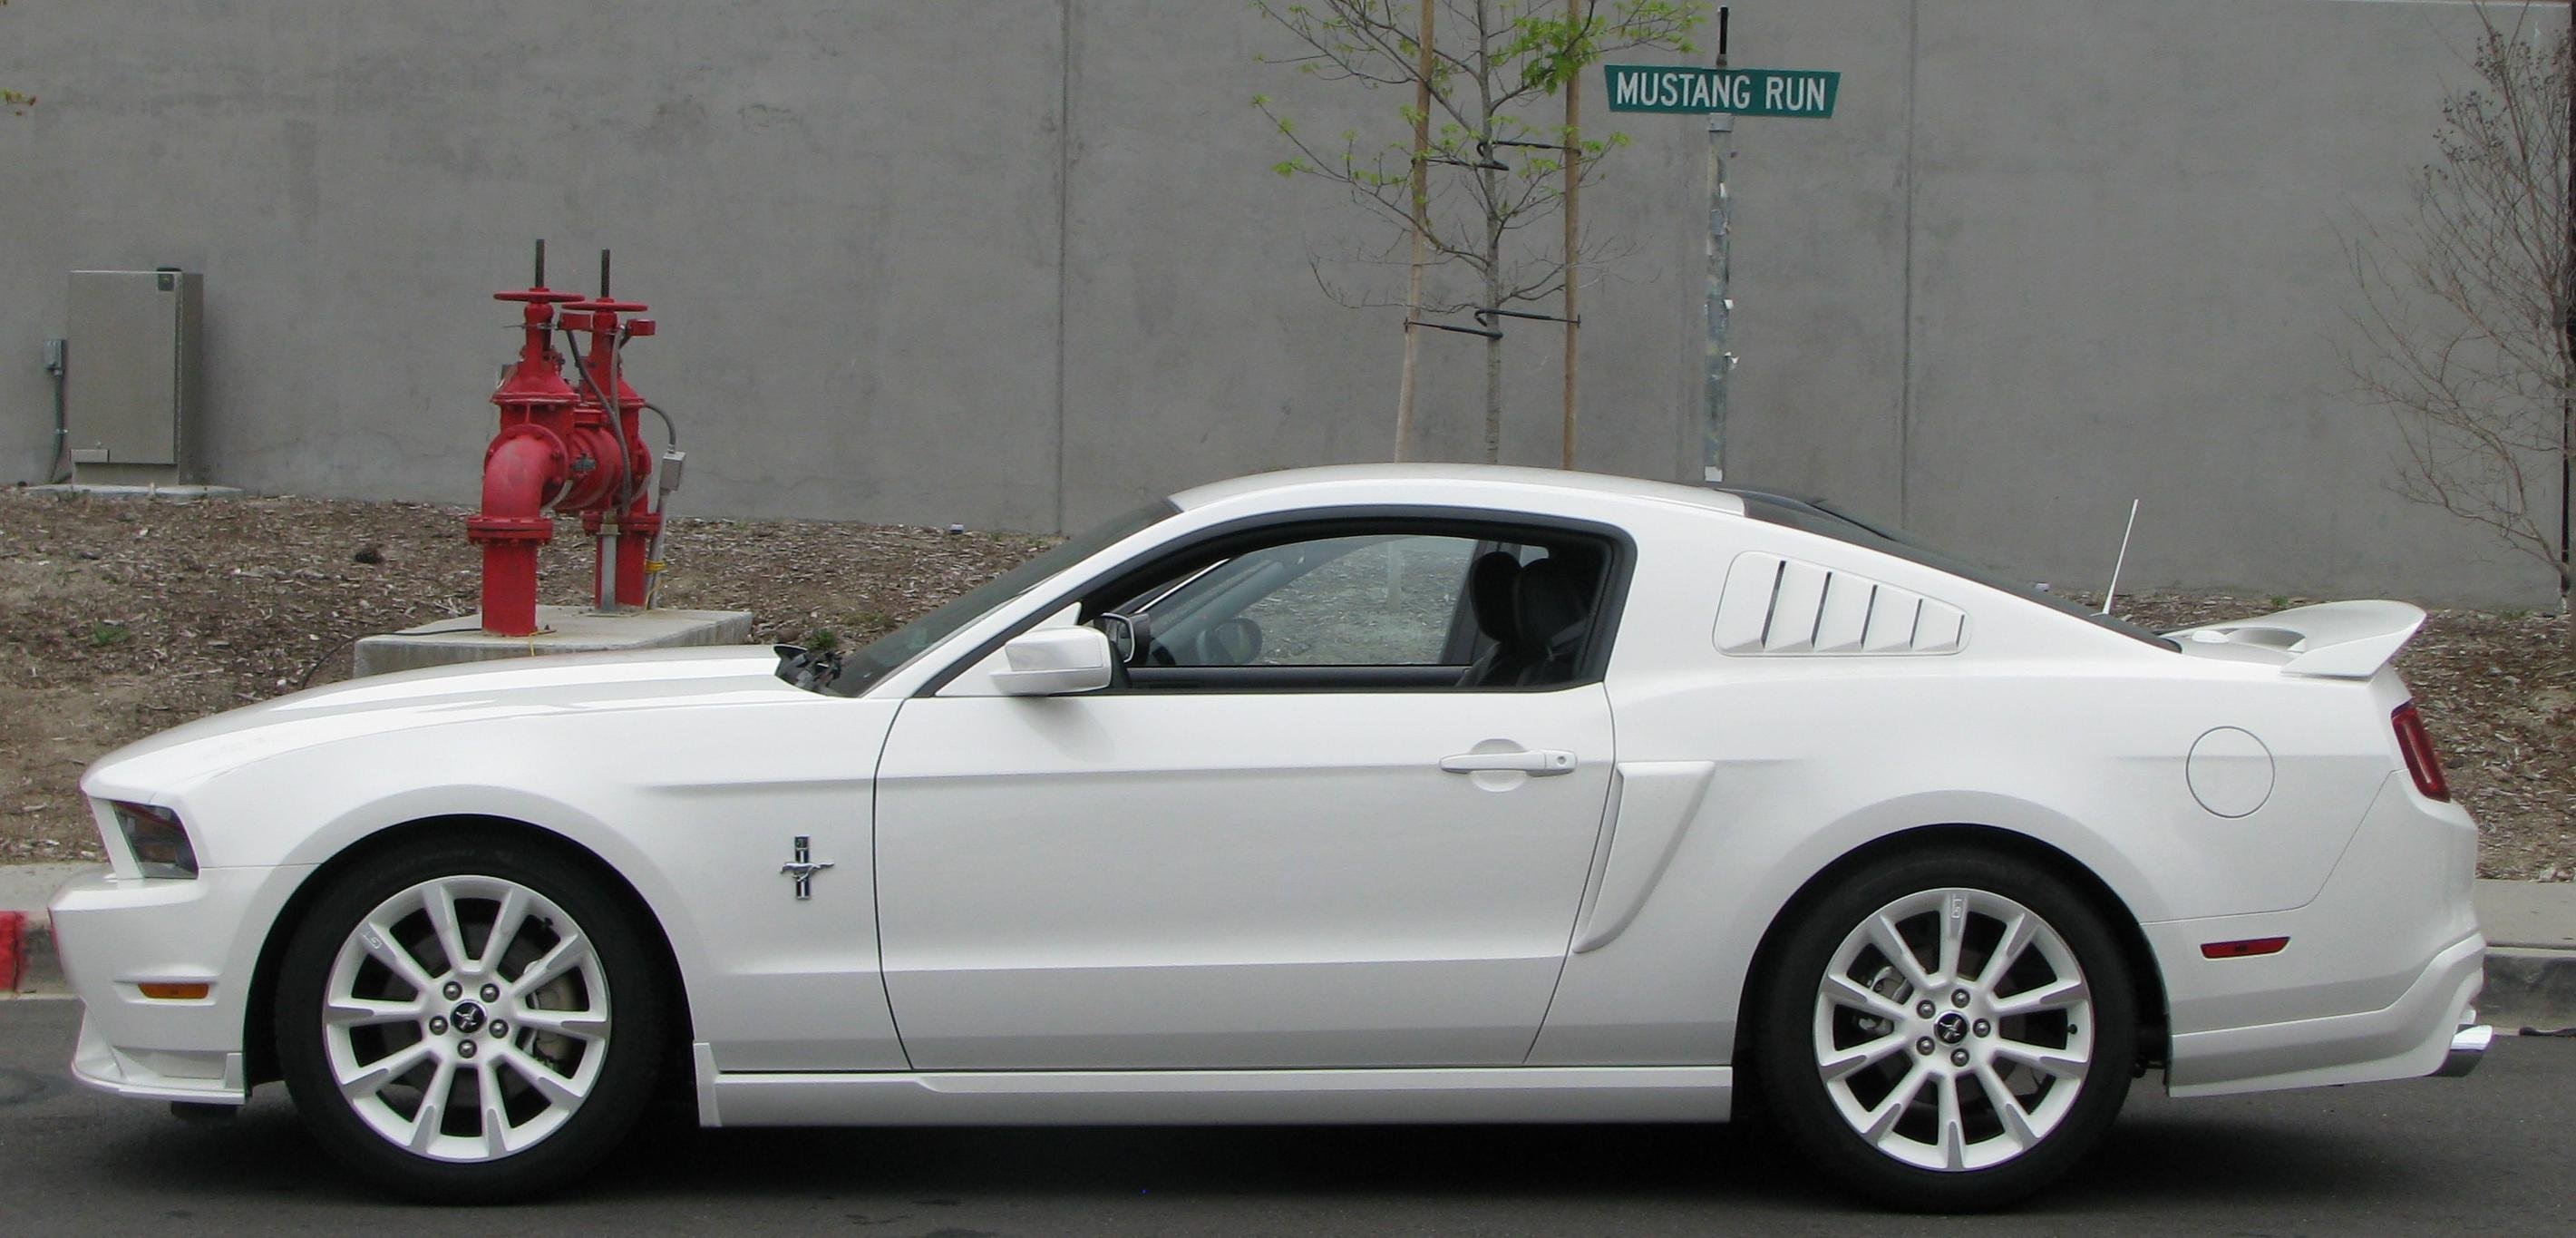 2012 mustang gt performance white w stripes page 2 ford mustang - Mustang 2012 White